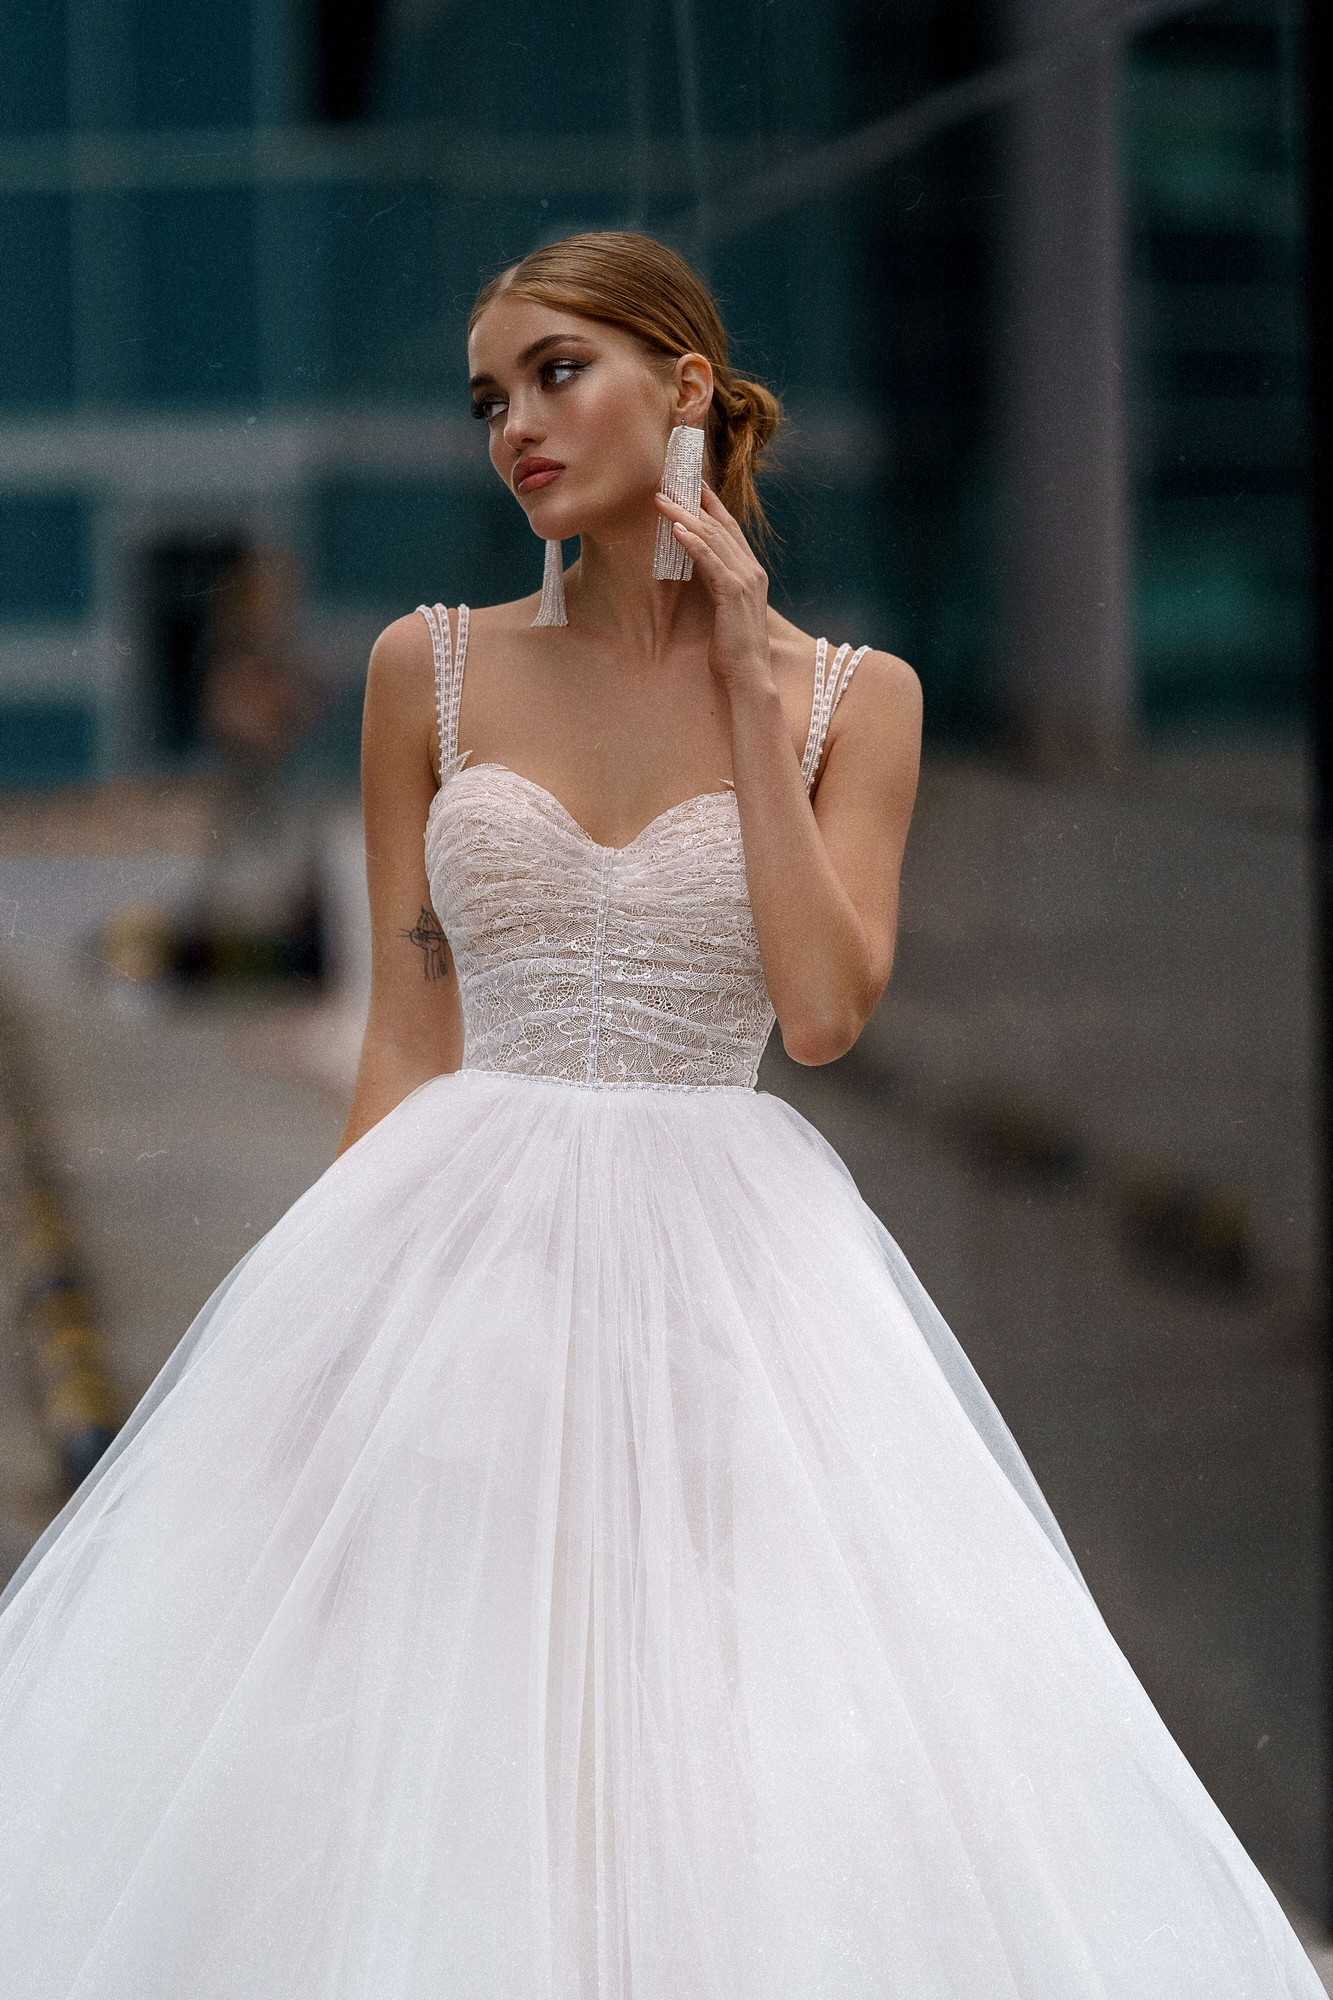 Offa from the Oh My Bride! Collection by Rara Avis